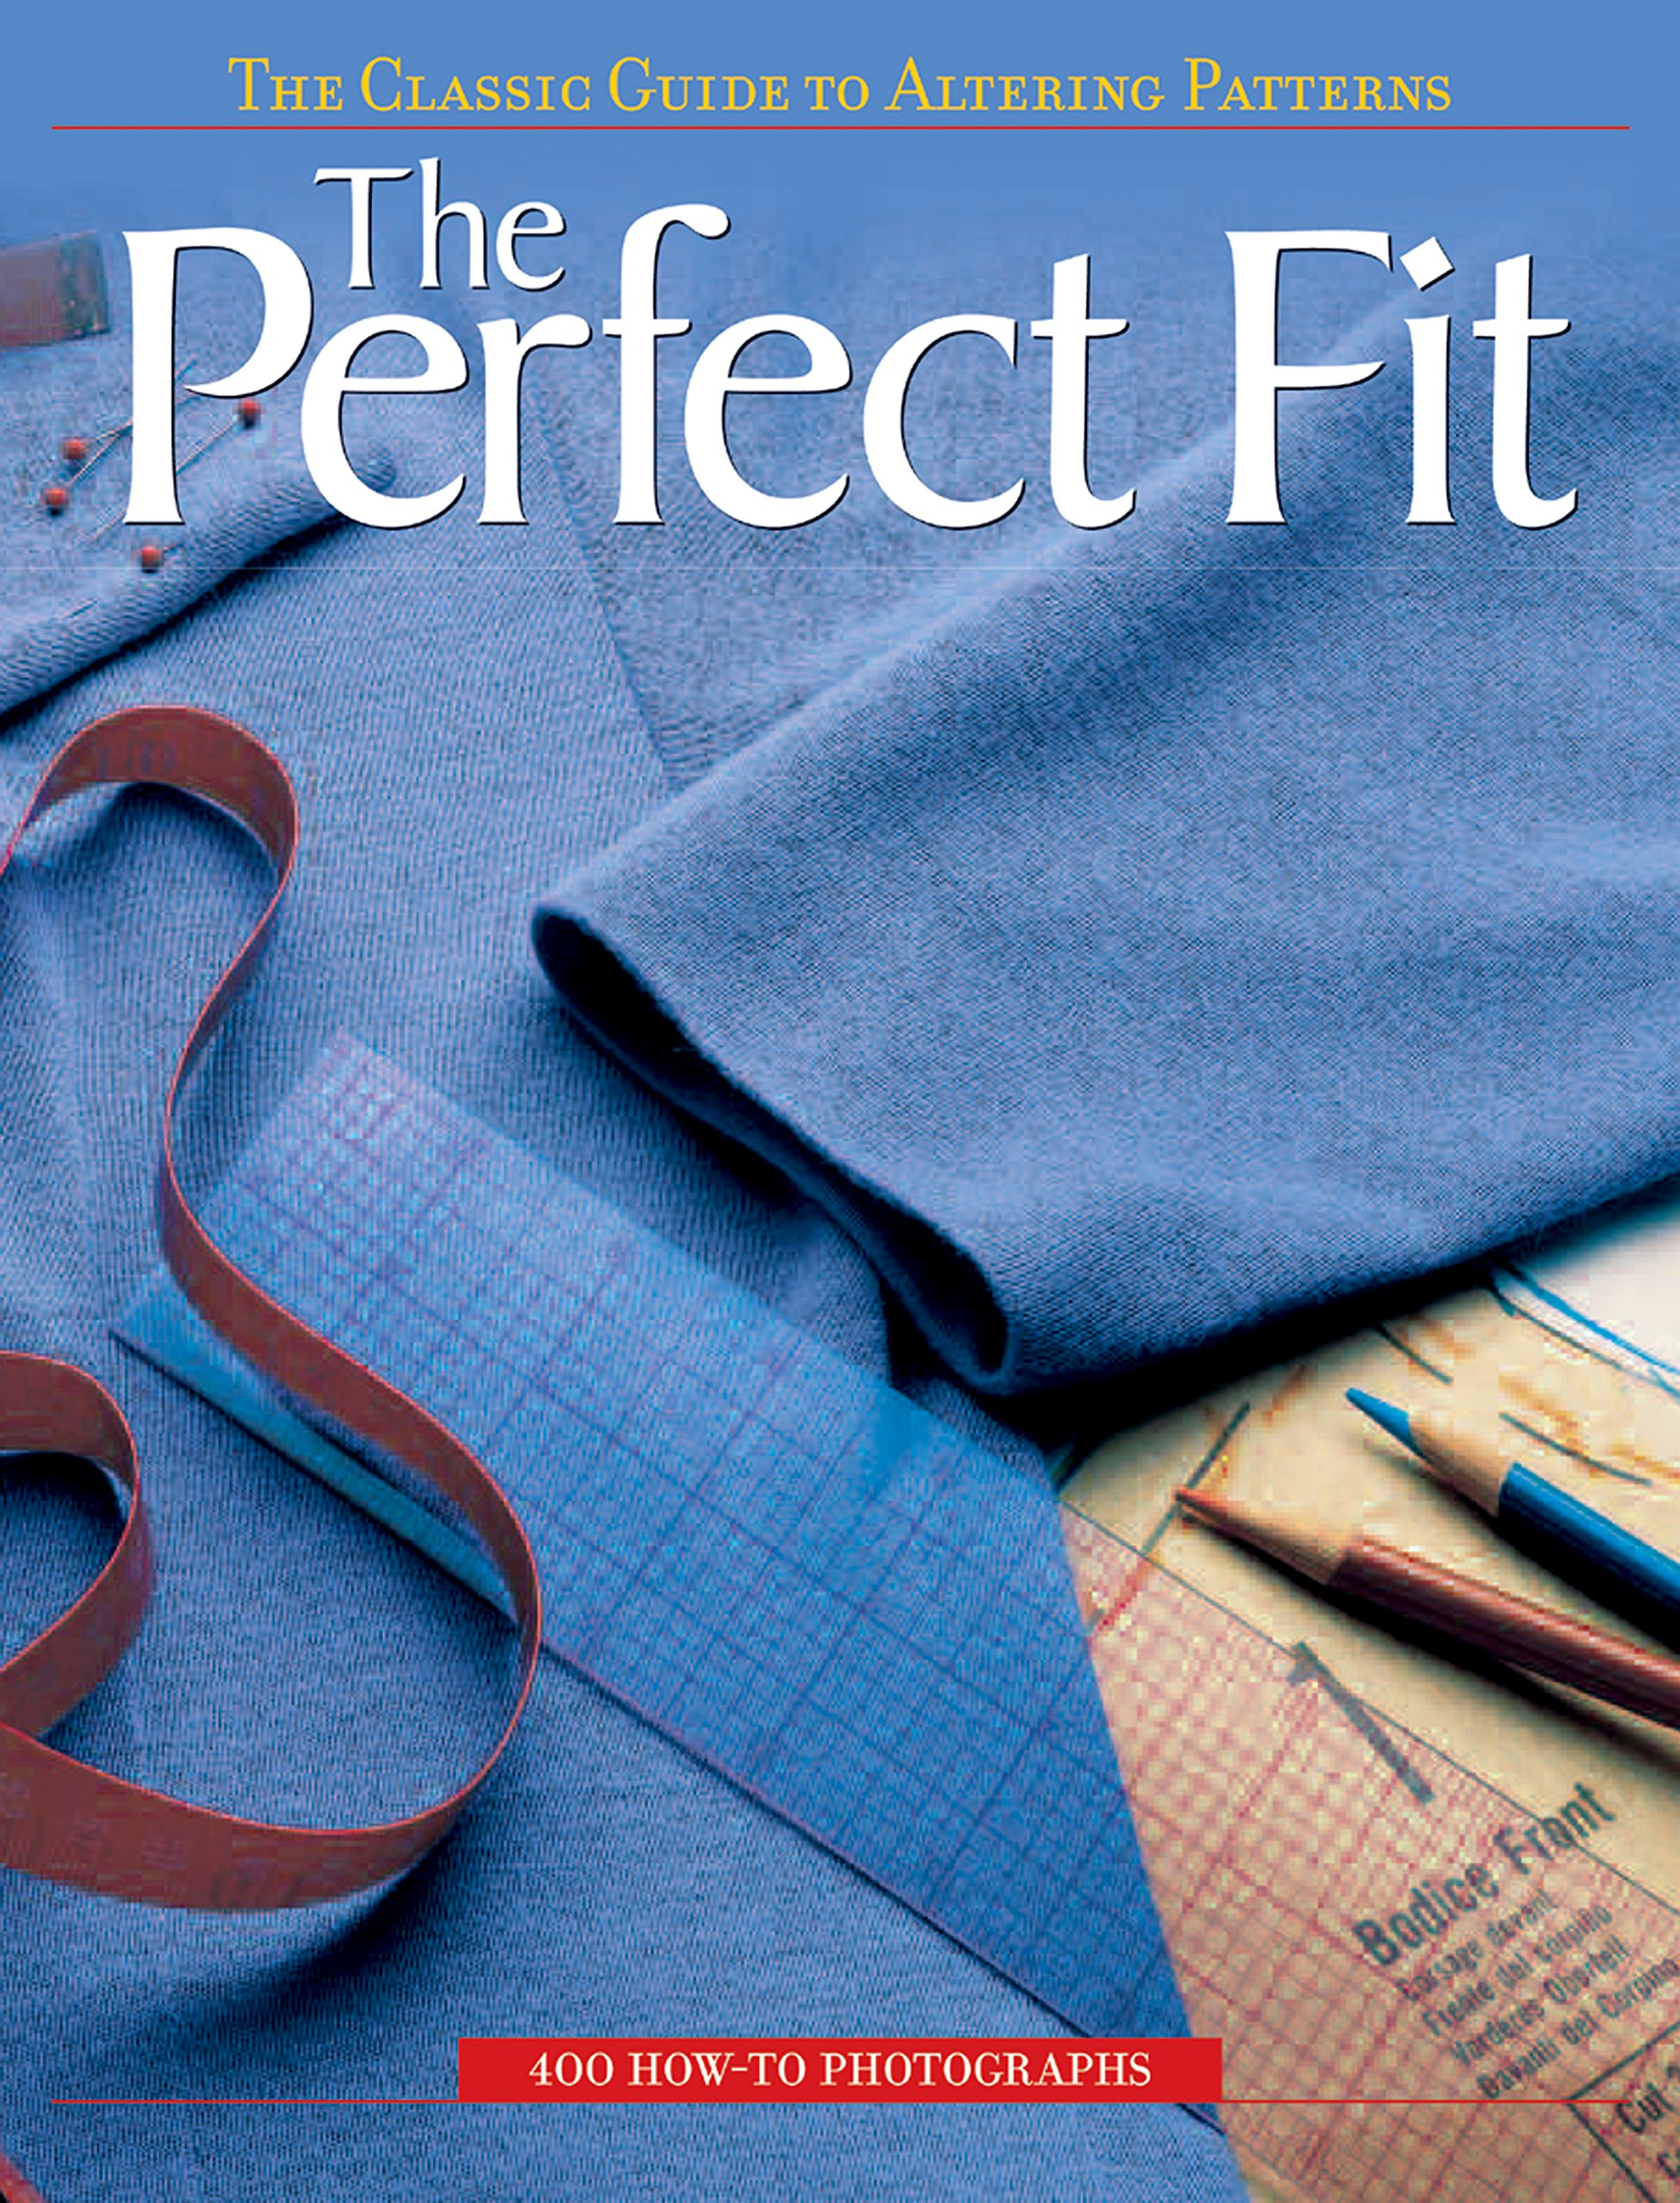 The Classic Guide to Altering Patterns The Perfect Fit